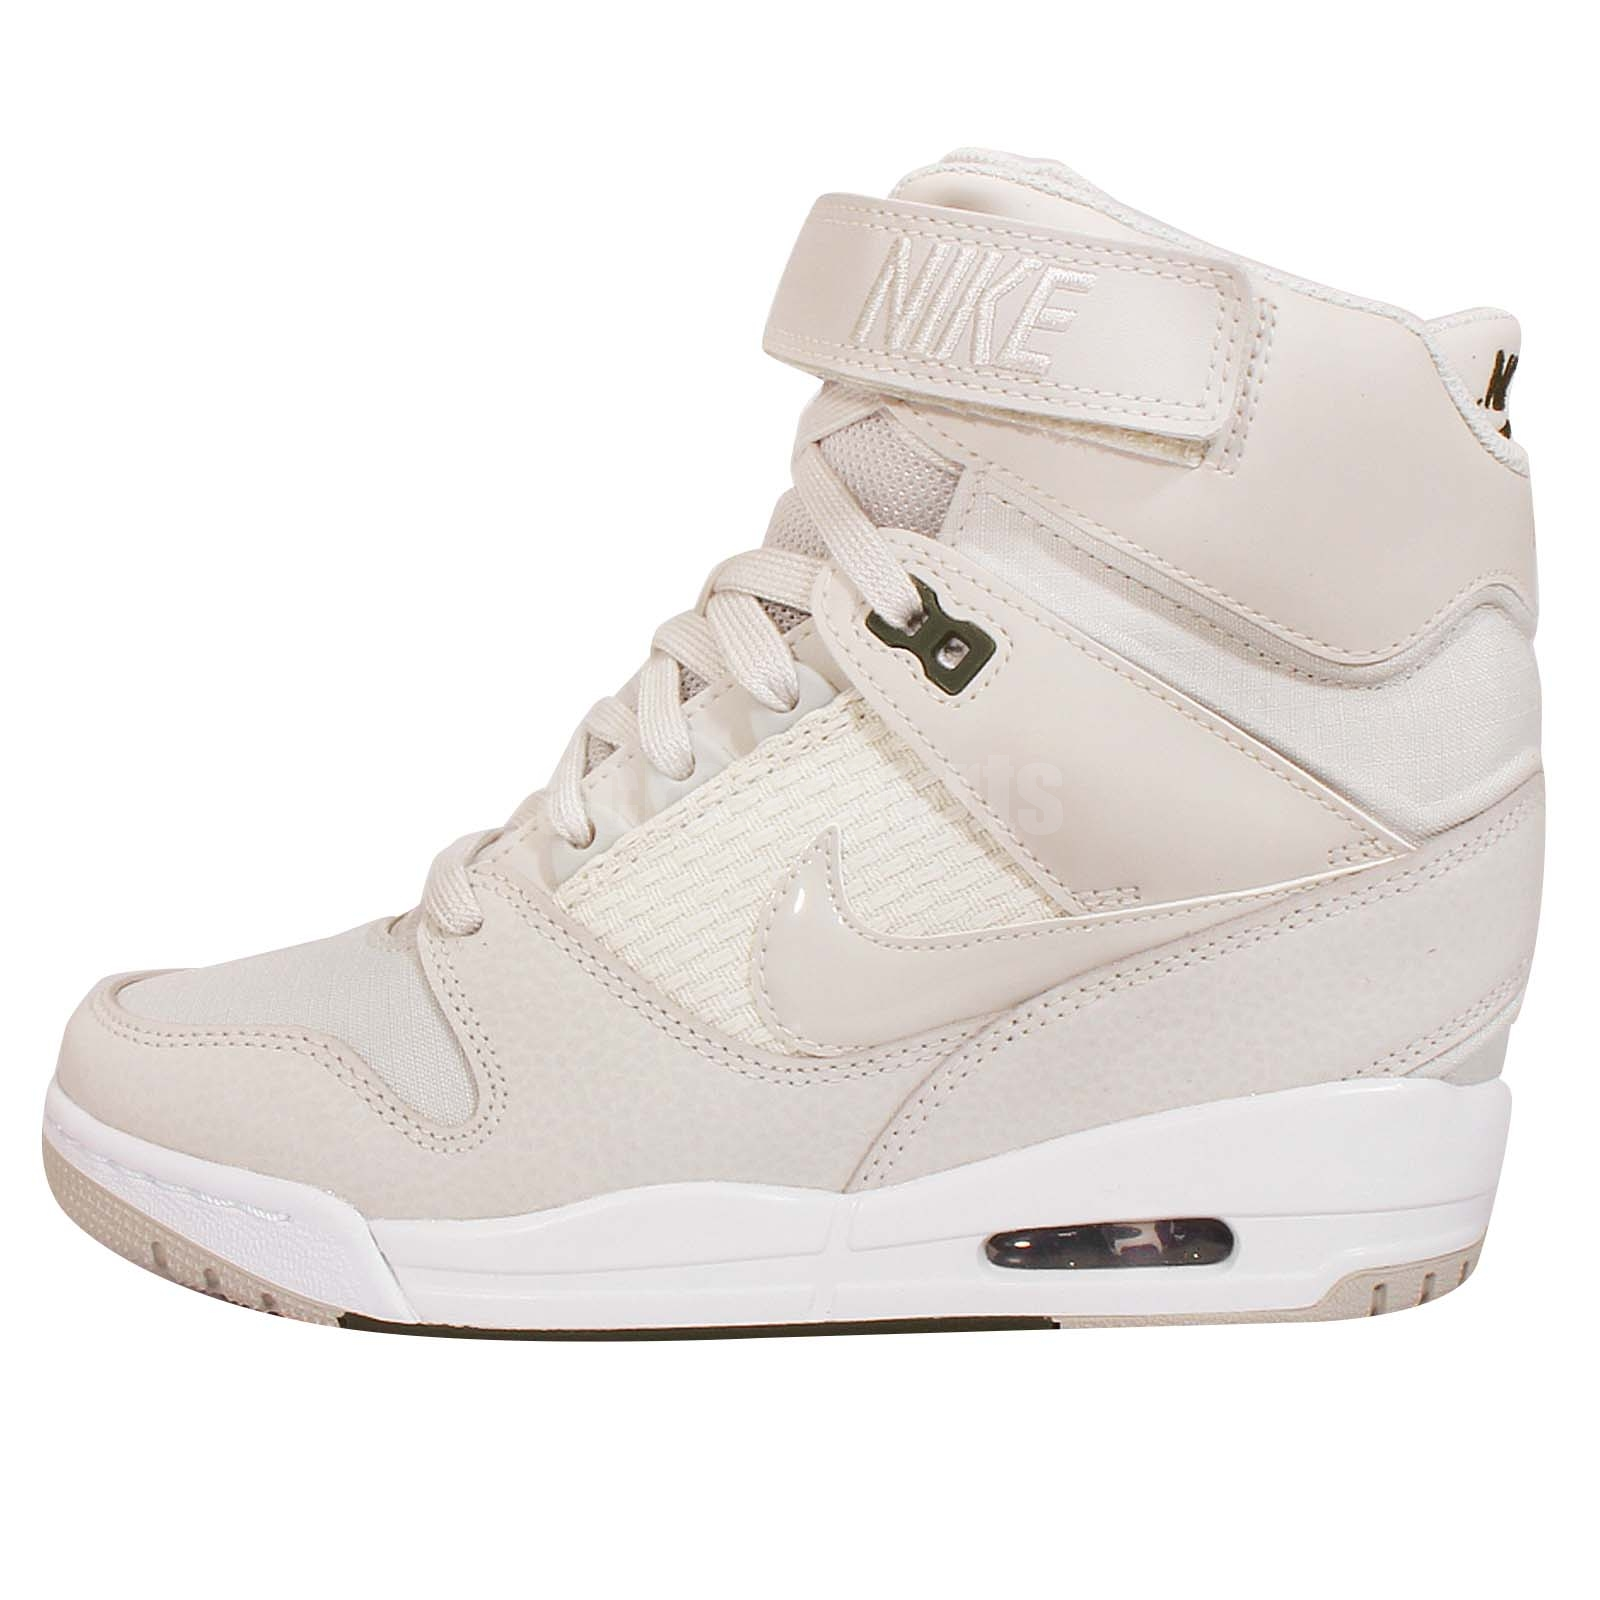 check out b4feb 4a1e7 ... air revolution sky hi sale Nike ...